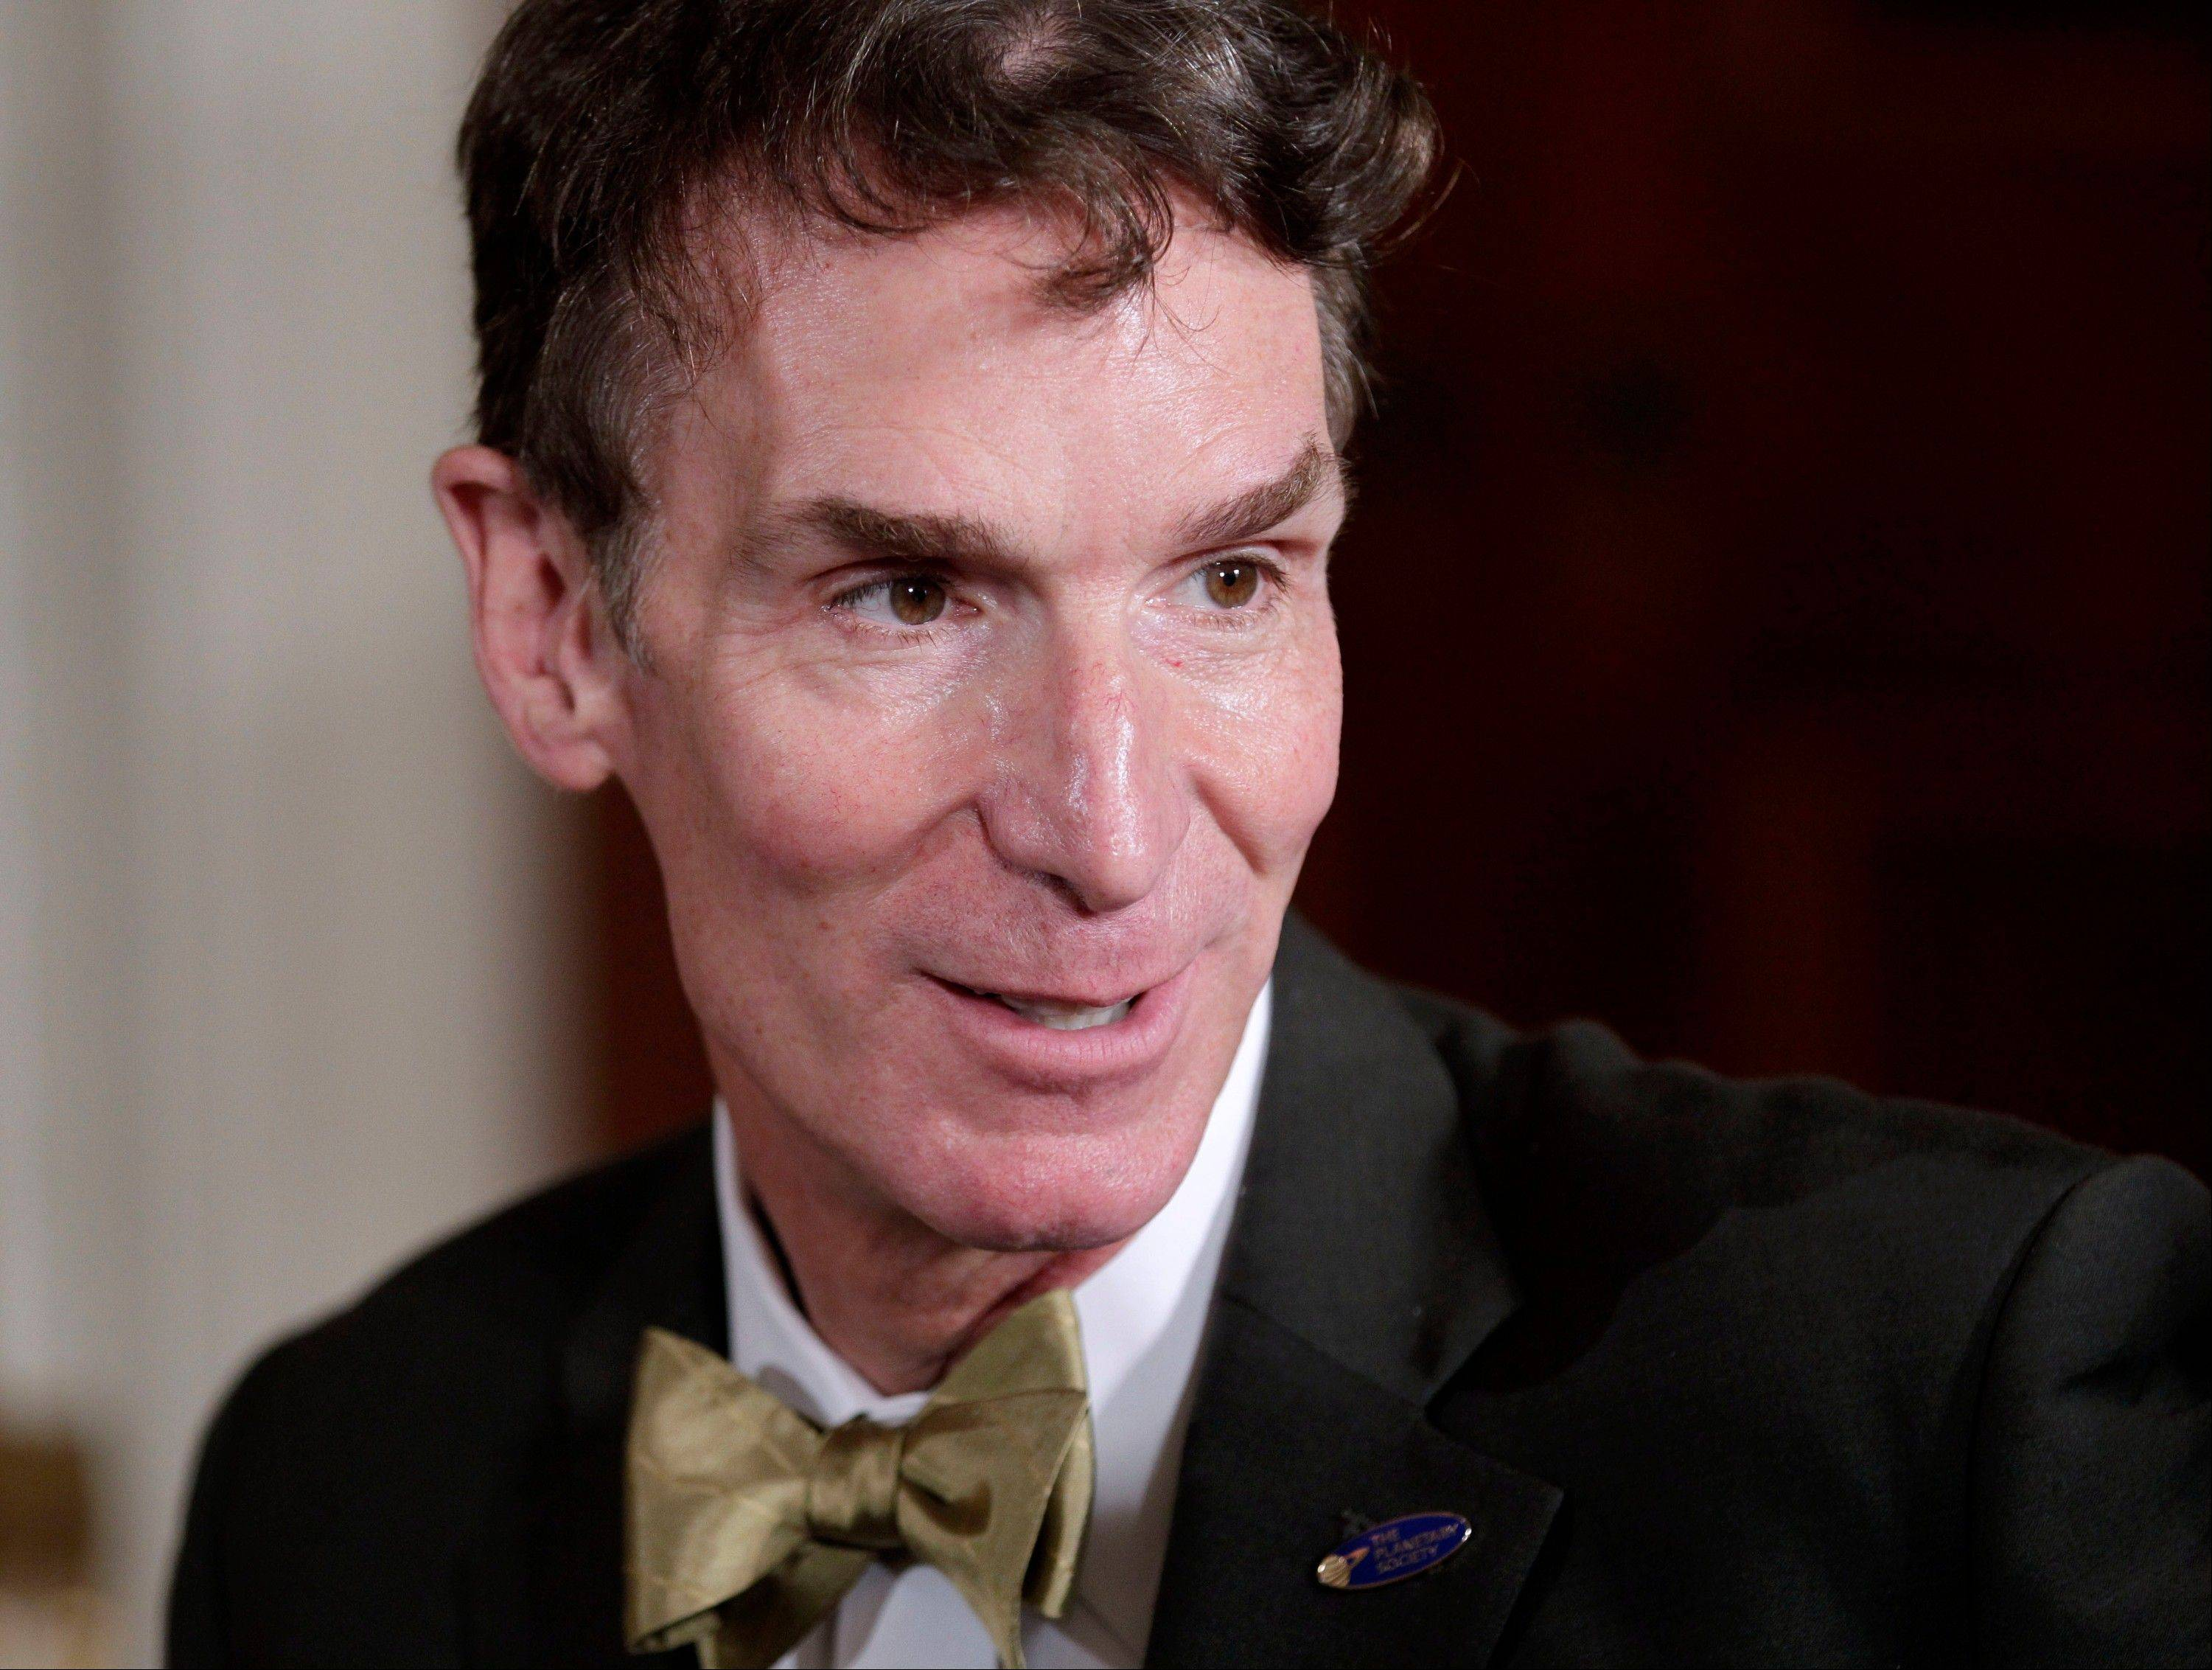 """Dancing With the Stars"" producers said television personality Bill Nye received medical attention Tuesday after he was hurt during his most recent performance."